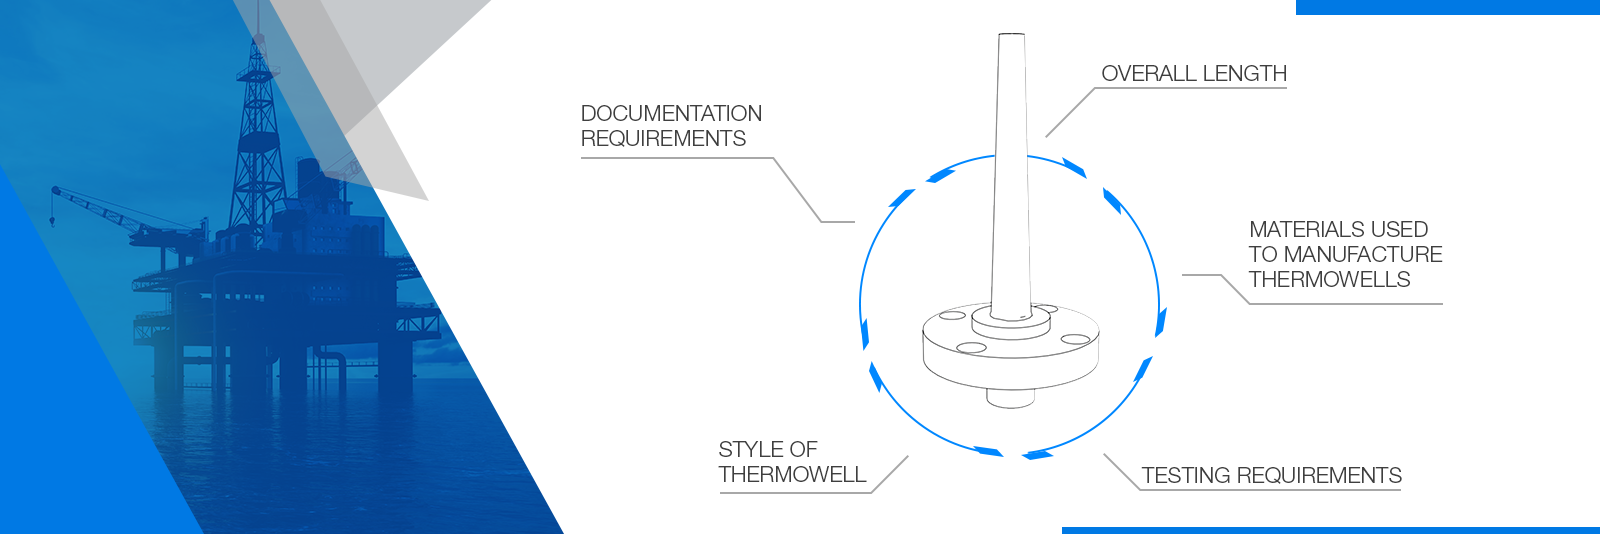 How Much Do Thermowells Cost? 5 Factors that Influence Price